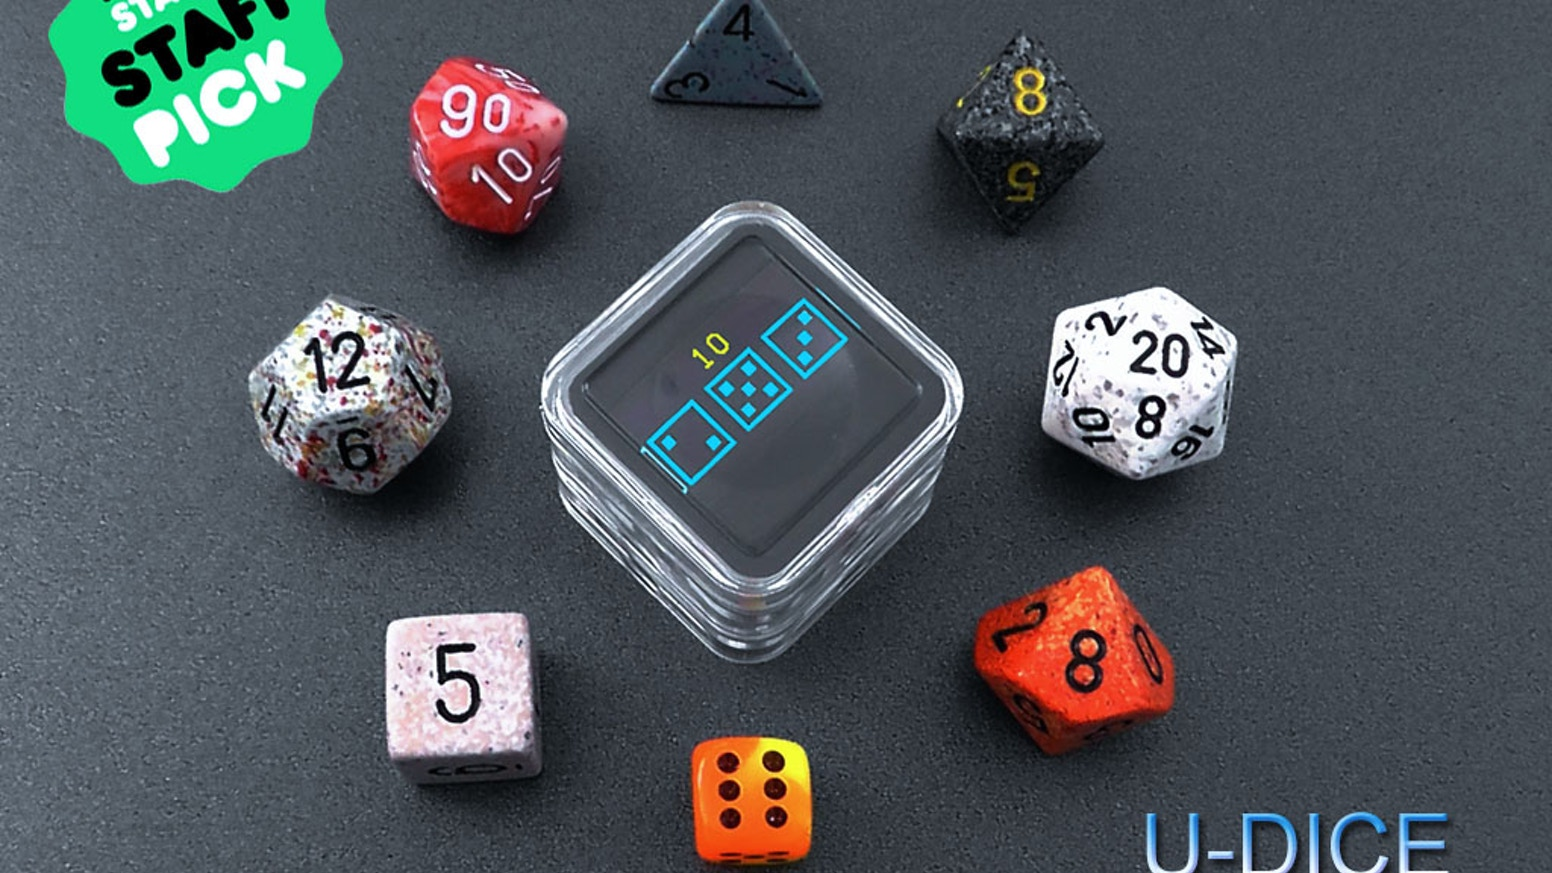 U-DICE is an universal electronic dice for any game needs 1-6 dice with each die be any of the 2, 3, 4, 6, 8, 10, 12, 20 or 100 faces.